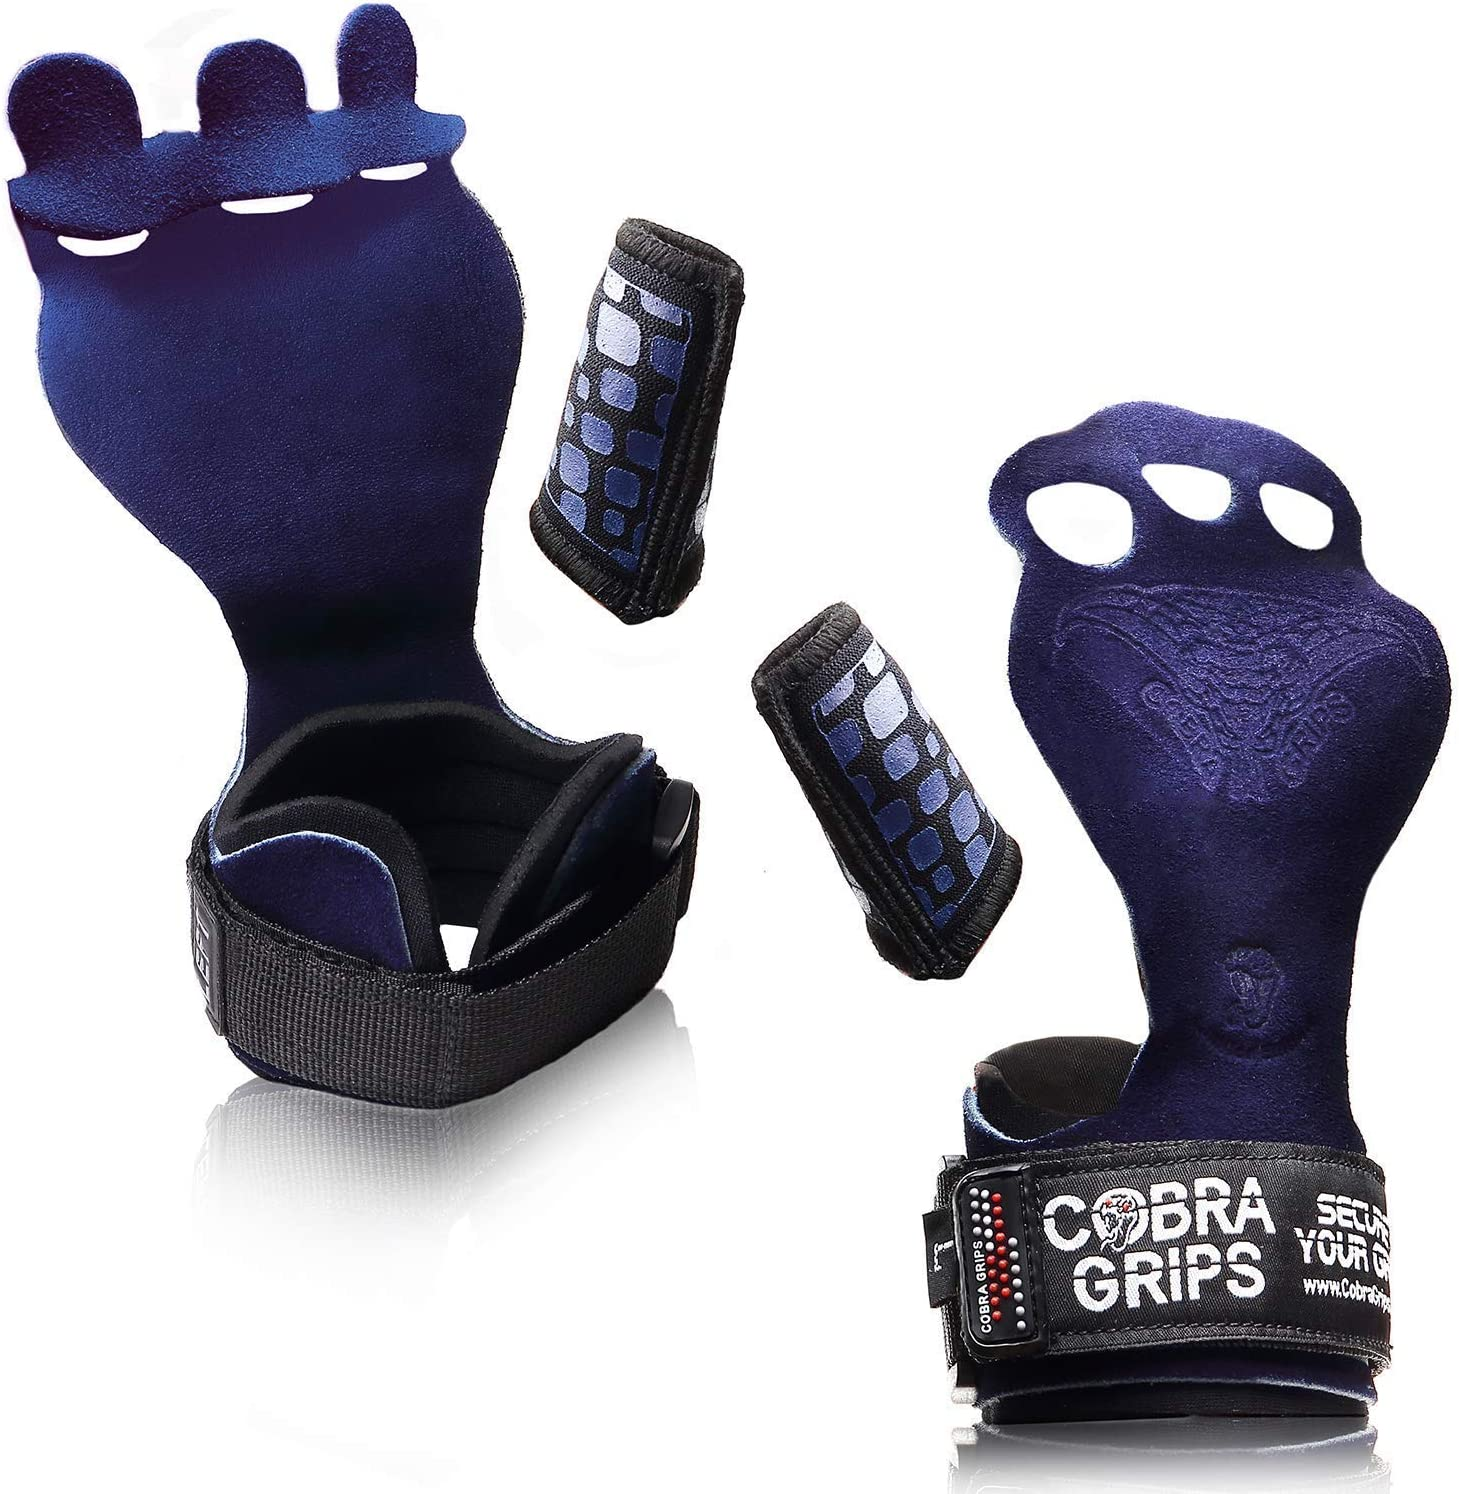 Cross Selling Training Grips Gymnastics Very popular Keep Hands Free Your from